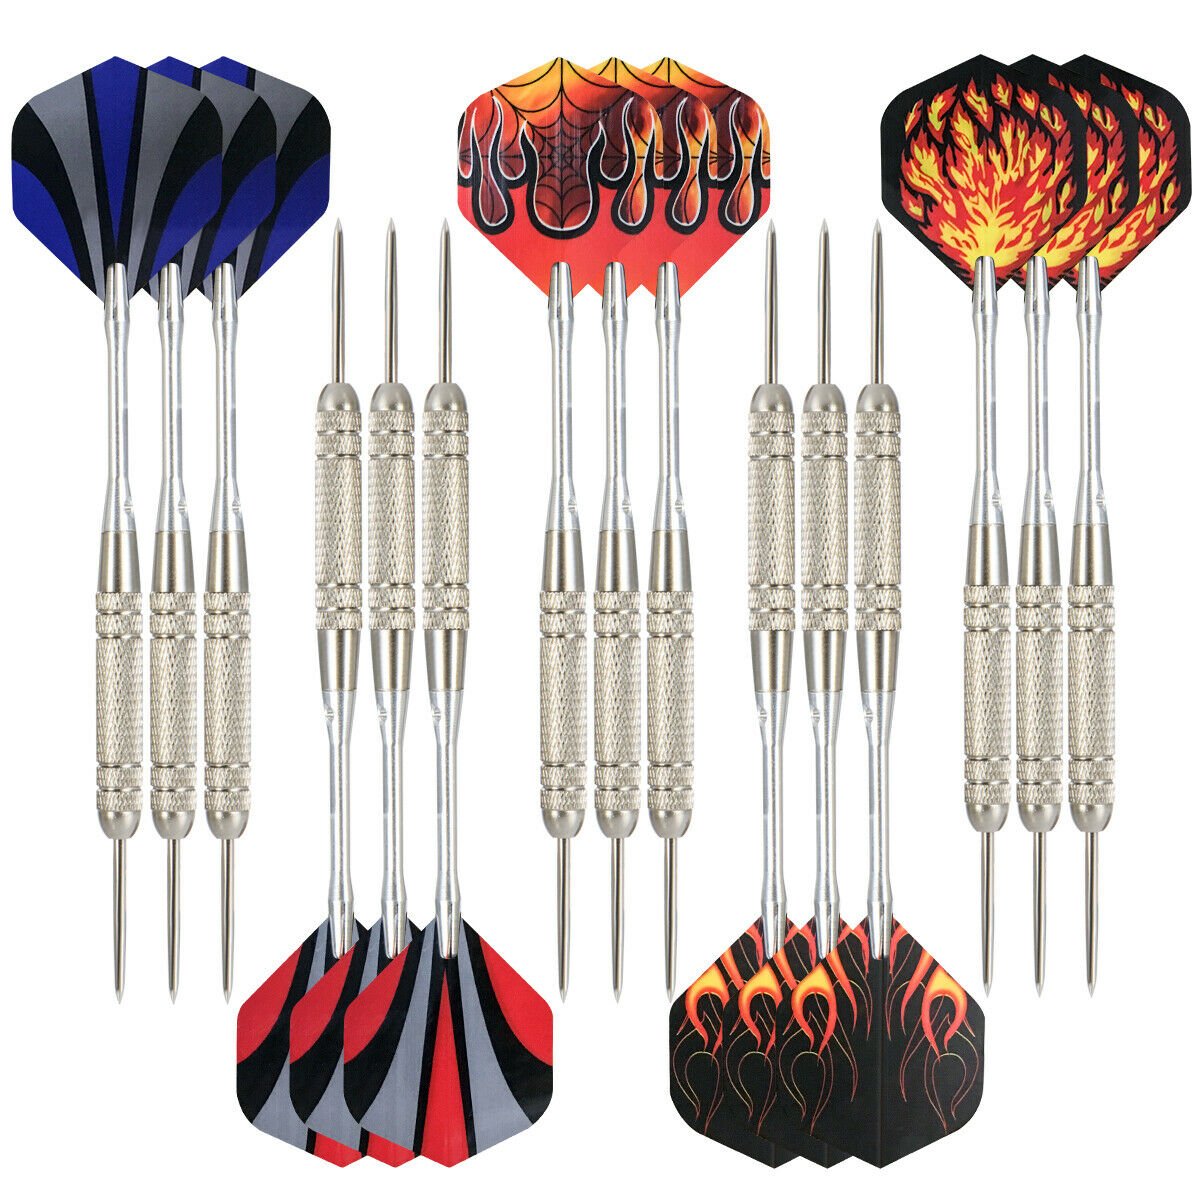 12 Dartpfeile Steel-Dartpfeile 4 Sets je 3 Flights 18g mit 15 Dartspitzen Flamm